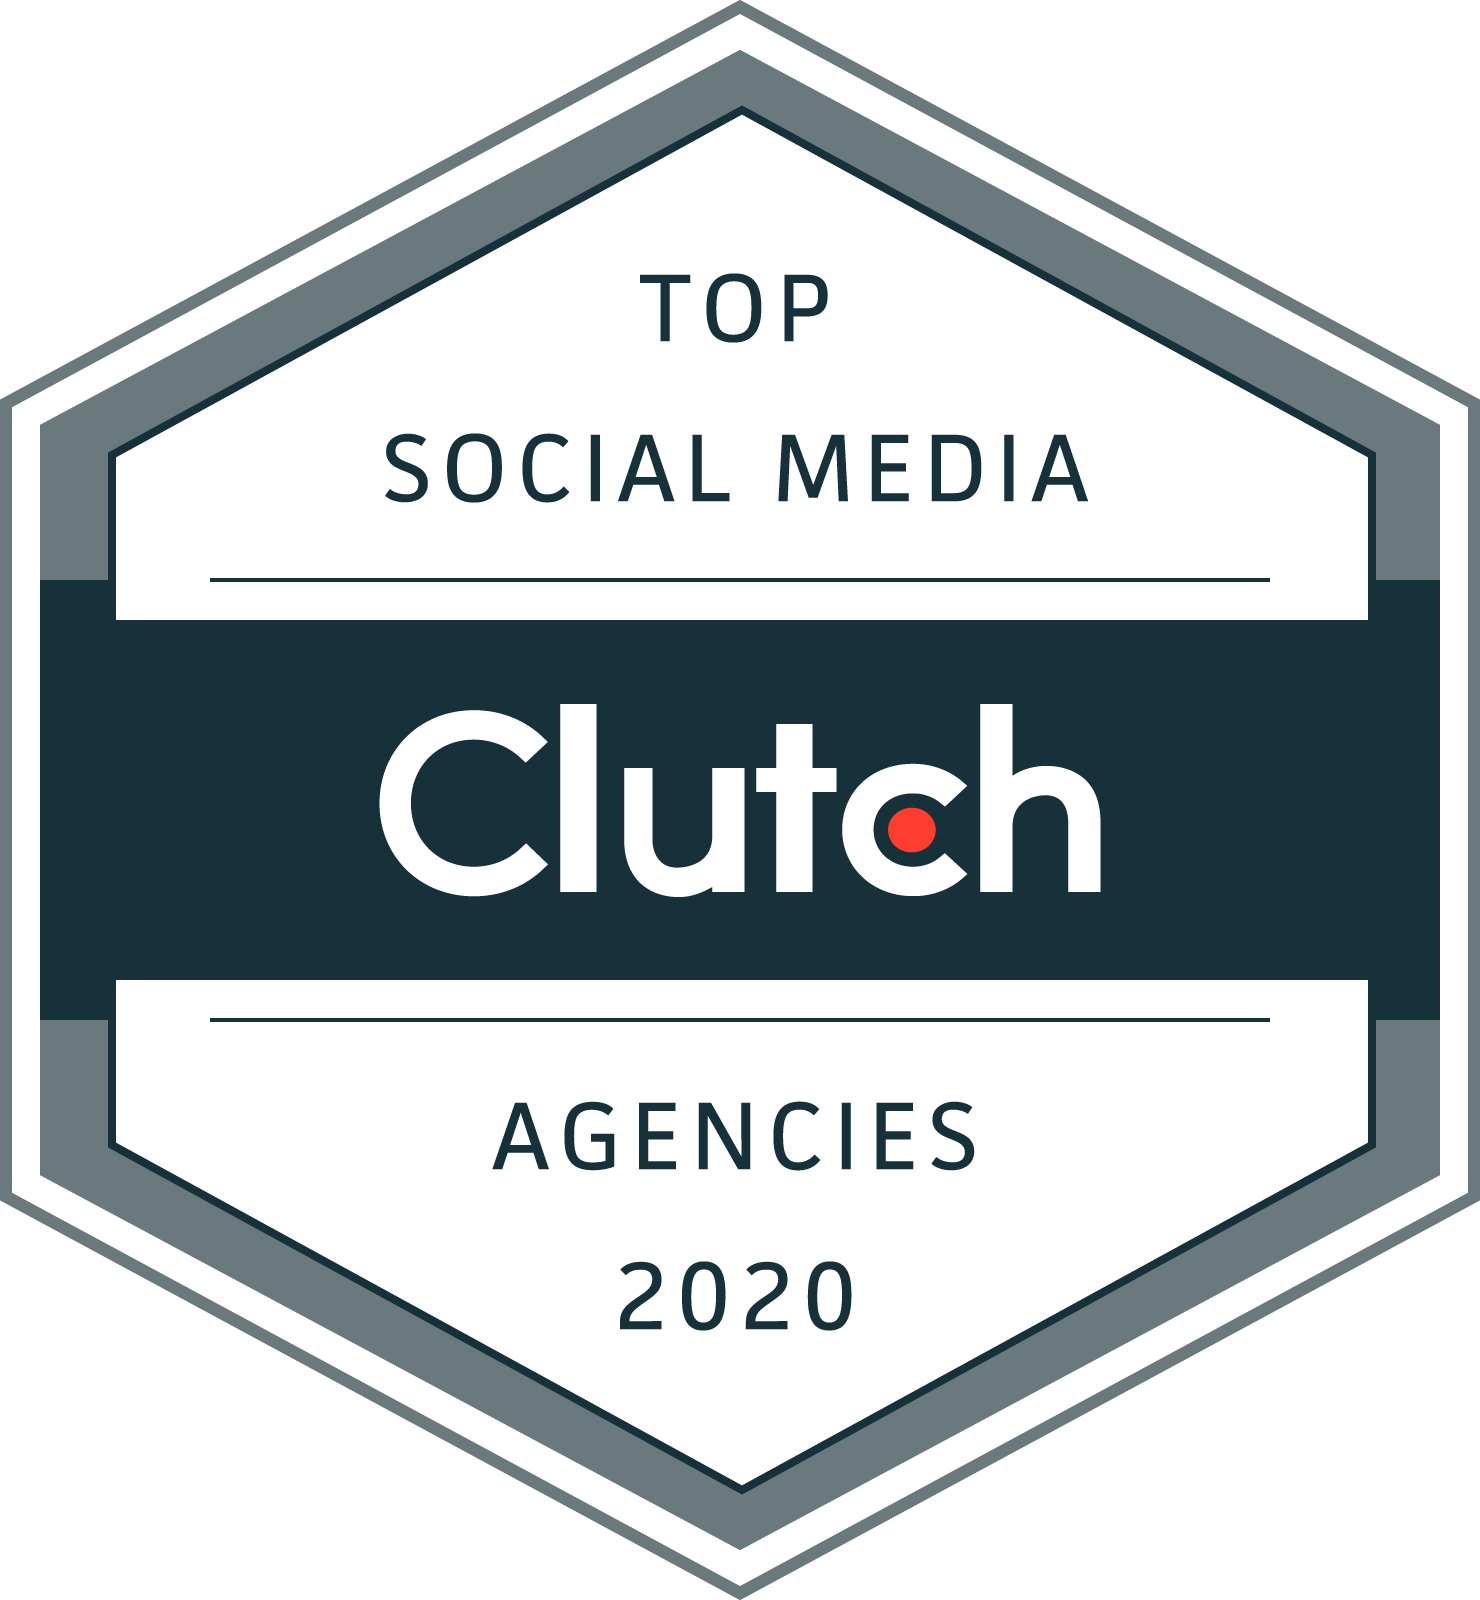 Top Social Media Agencies 2020